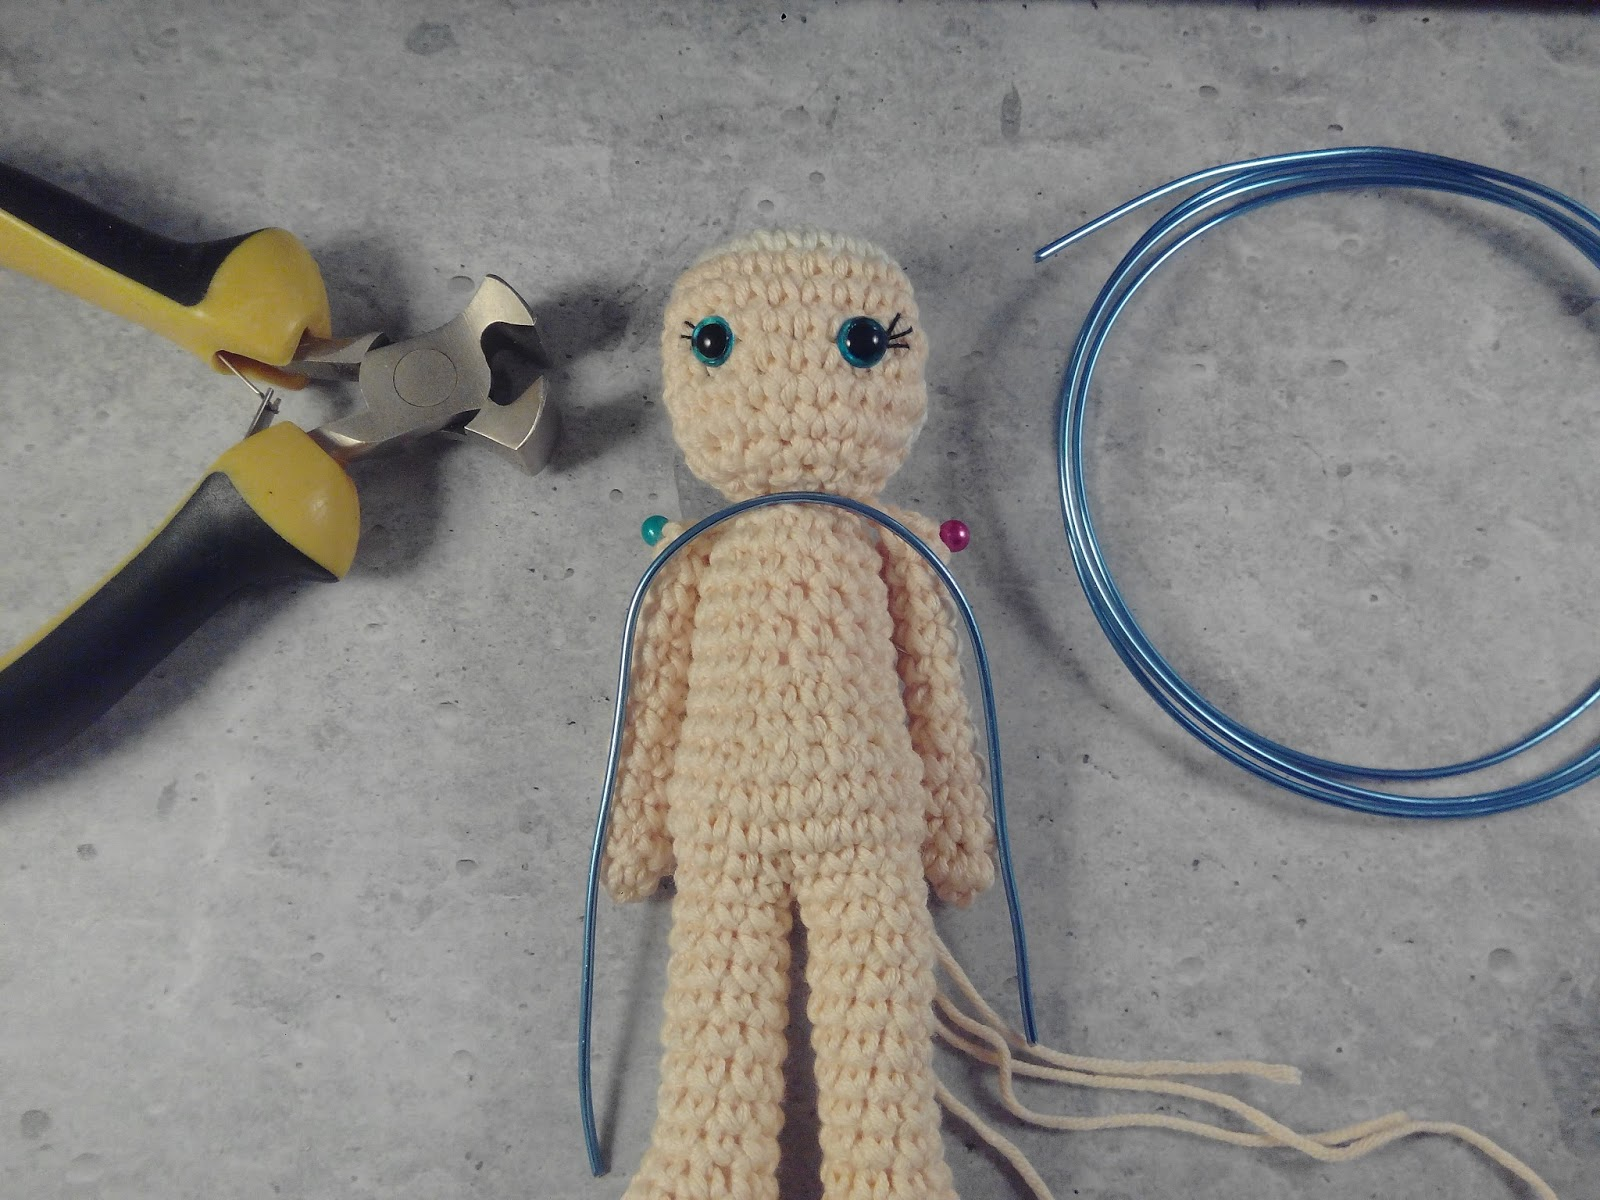 Geekurumi: How to make poseable arms for your amigurumi